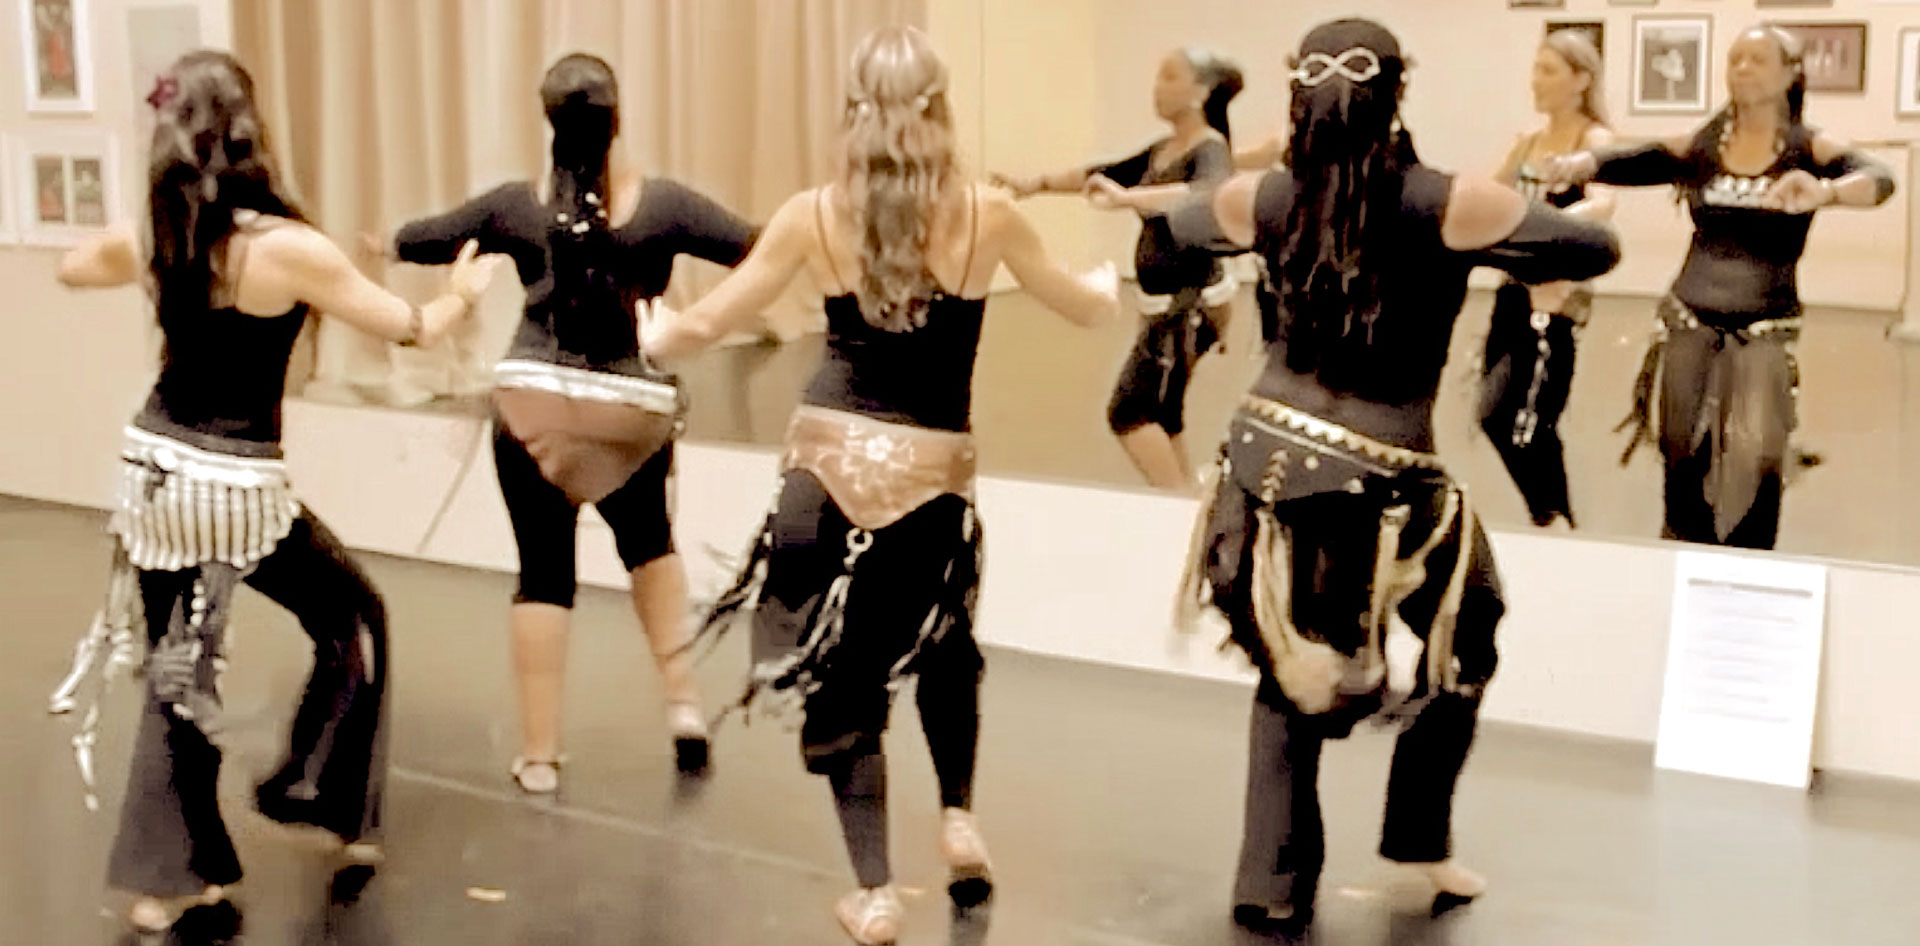 Cardio Tribal Belly Dance (CTS3) Workout Session